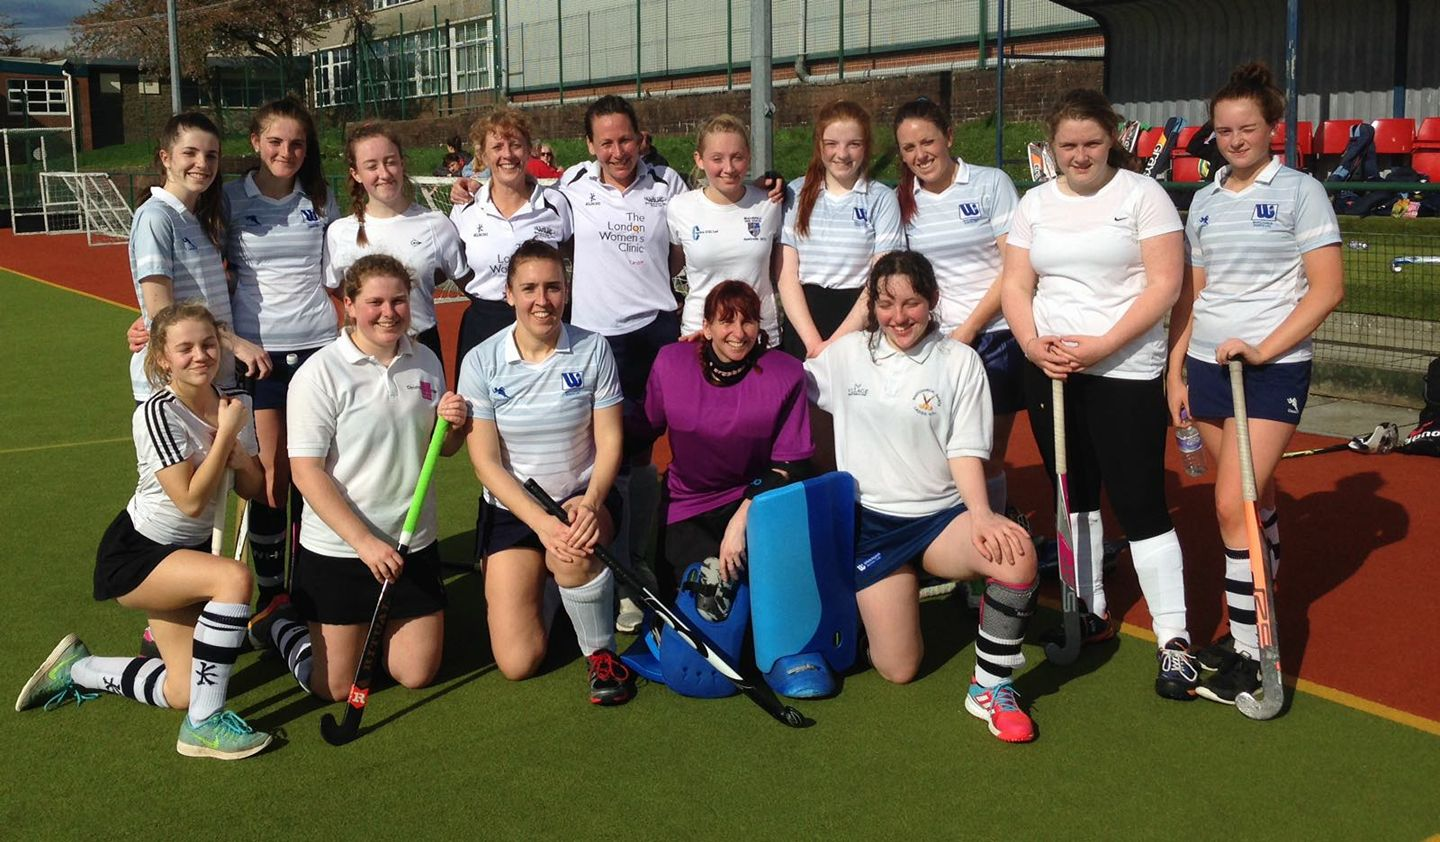 WHC Saints 5s Team photo Taken 2nd April 17